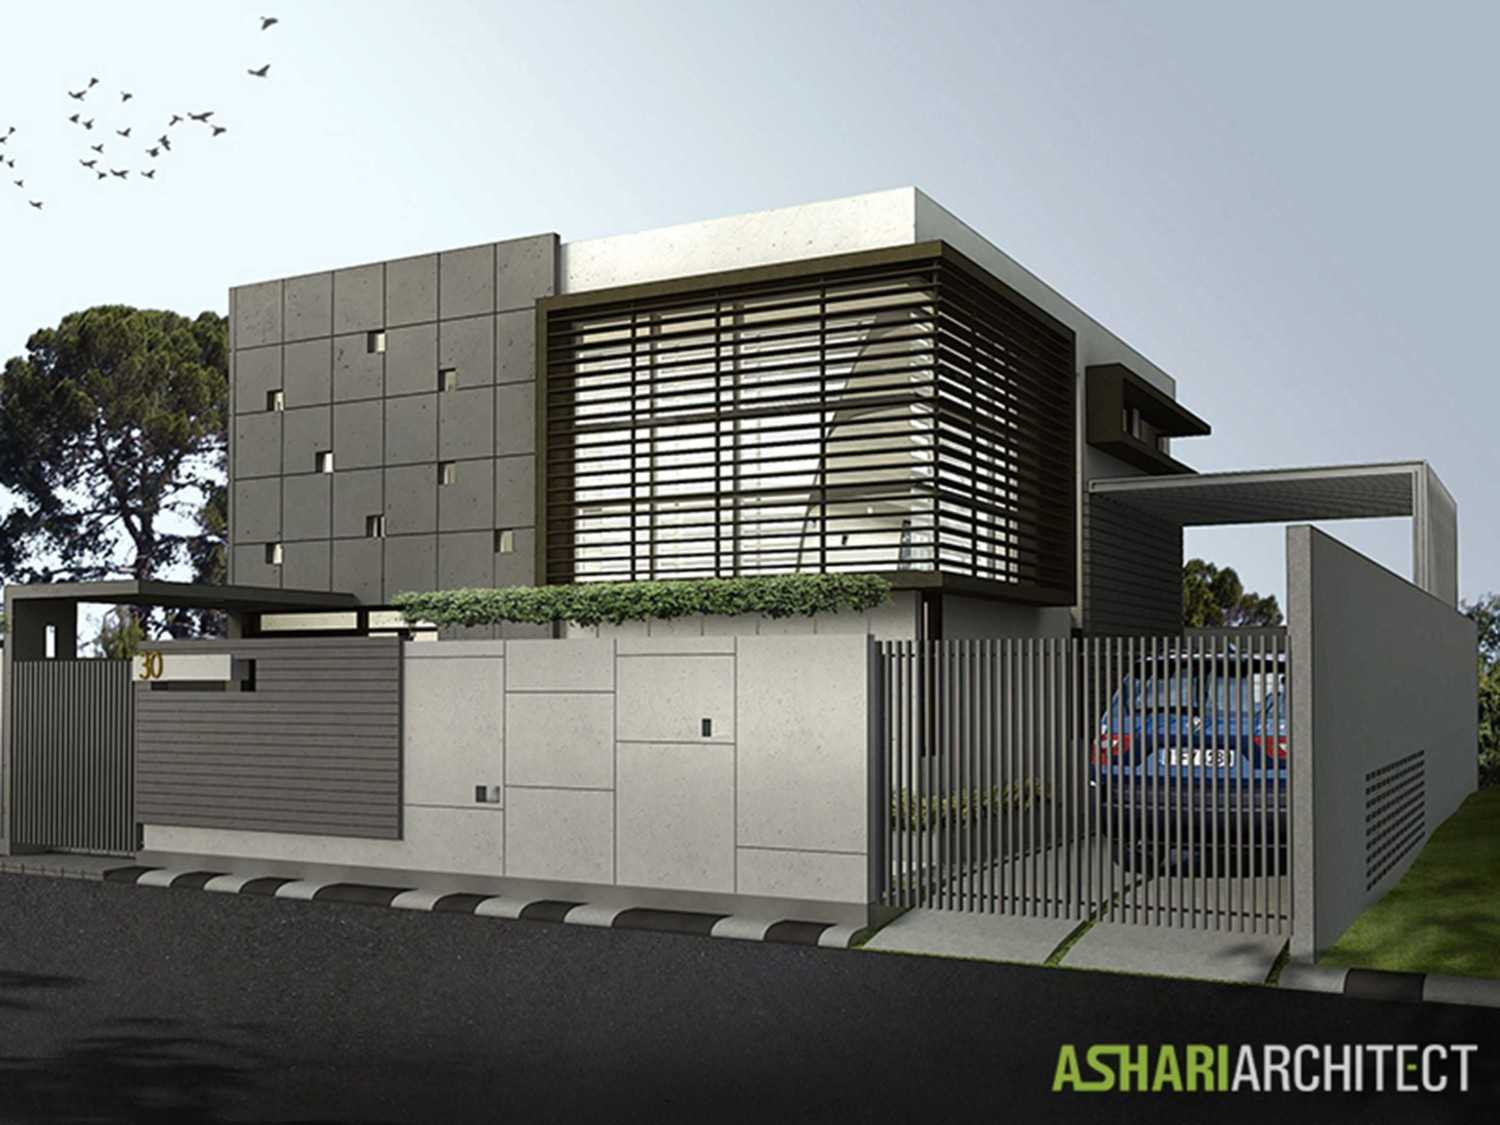 Ashari Architects Palembang House Palembang, Indonesia Palembang, Indonesia Render-Front-View Kontemporer 11871